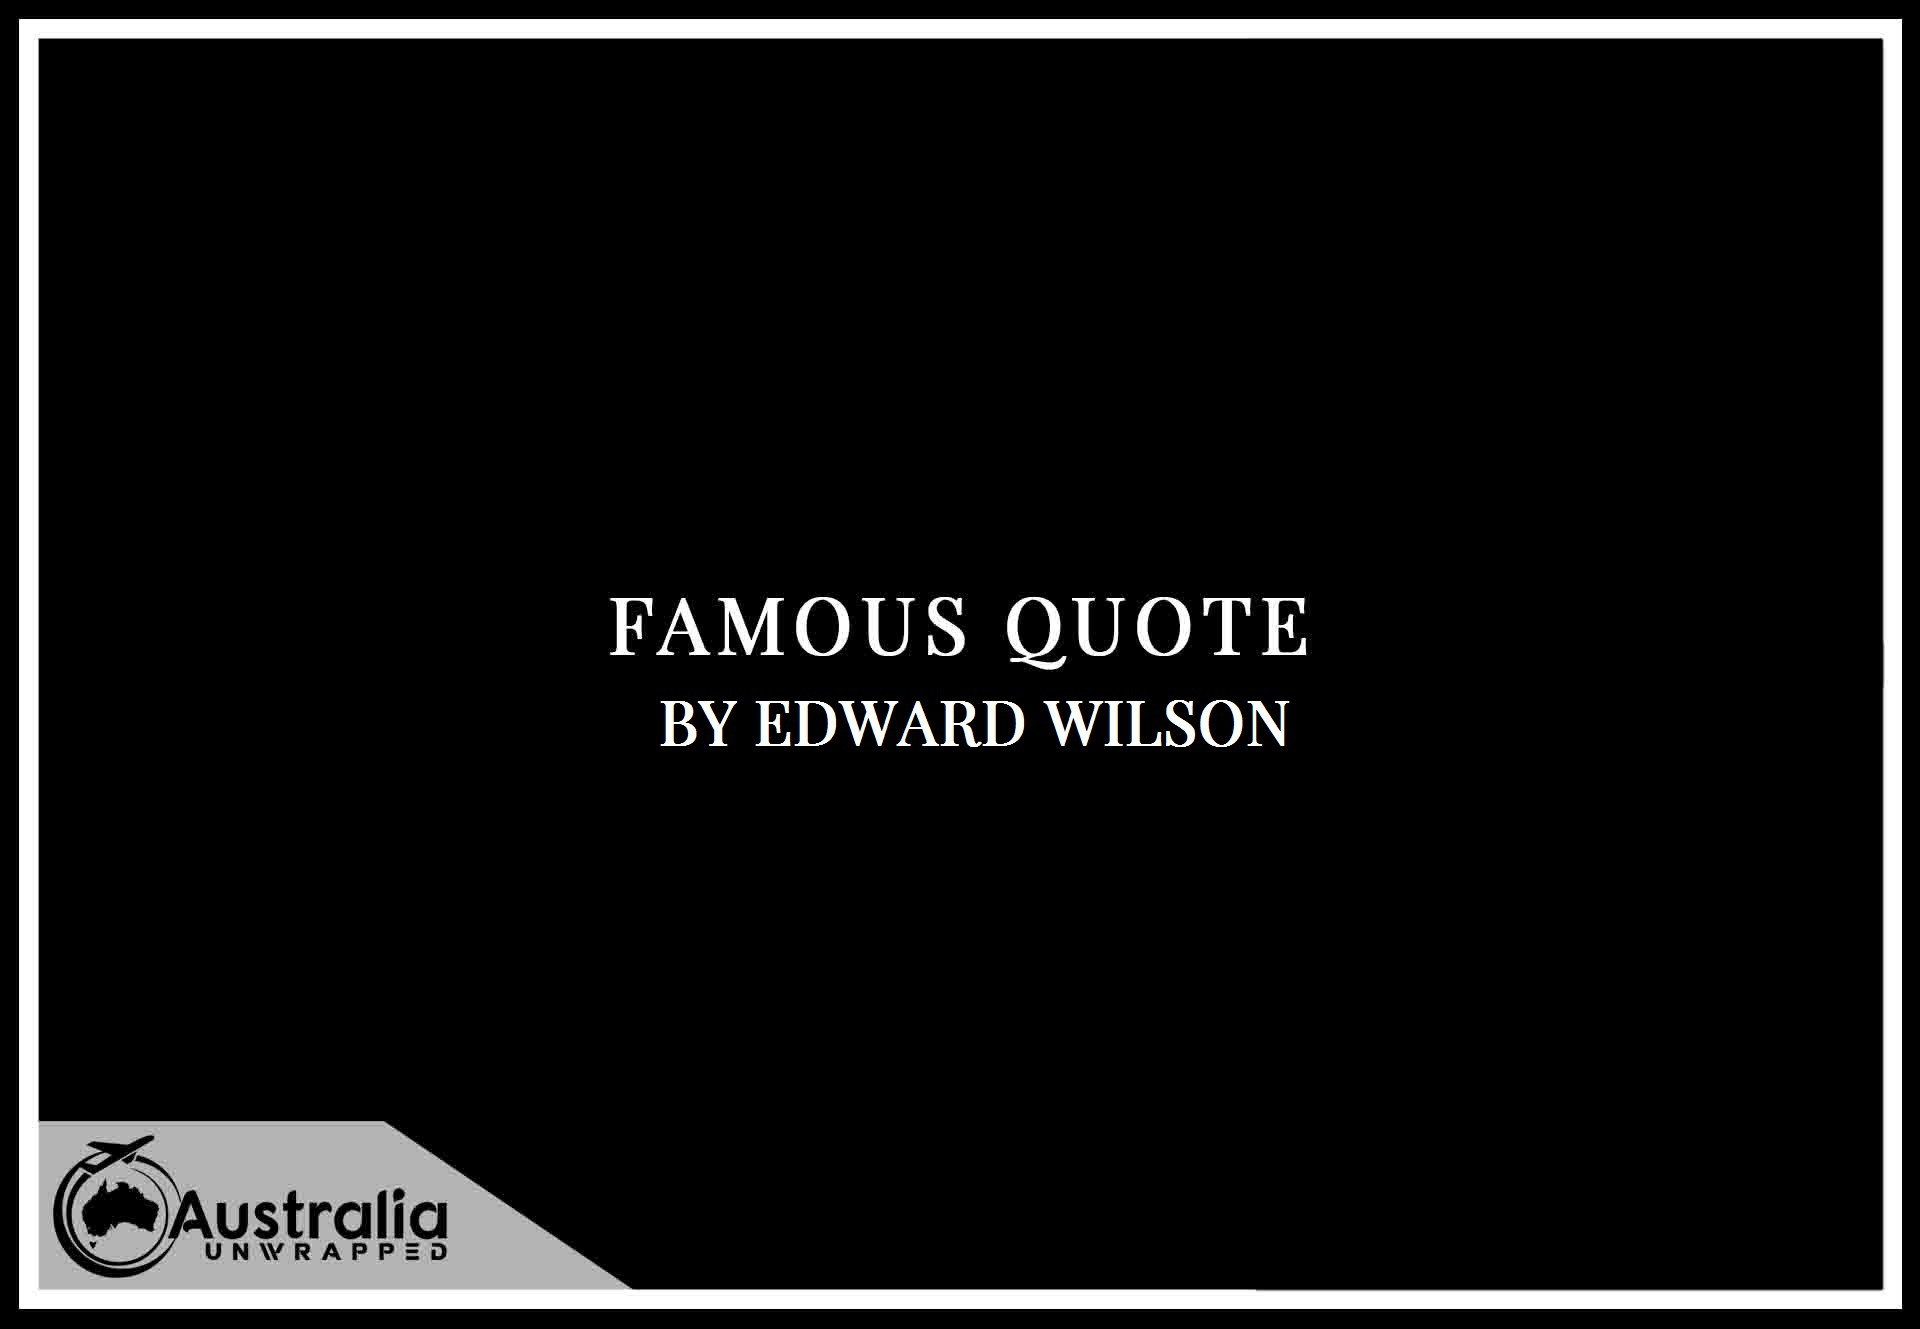 Edward Wilson's Top 1 Popular and Famous Quotes